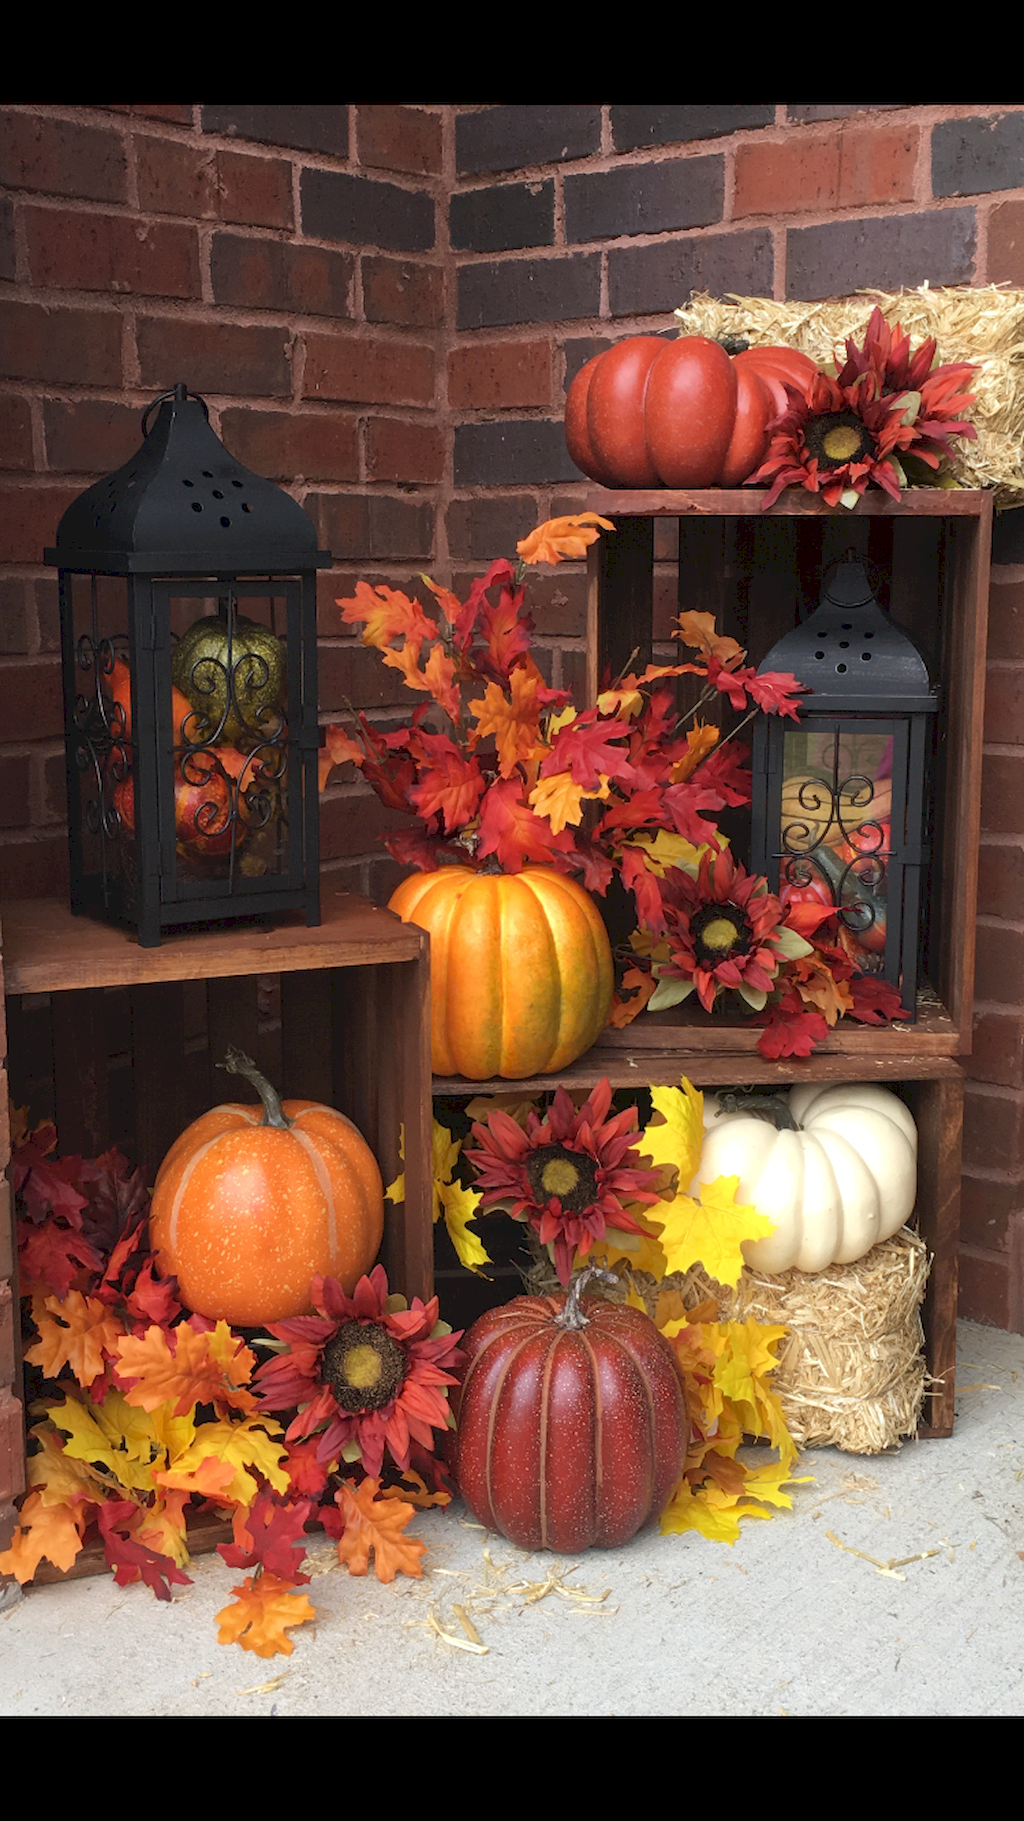 75 Farmhouse Fall Porch Decorating Ideas - setyouroom.com #fallfrontporchdecor